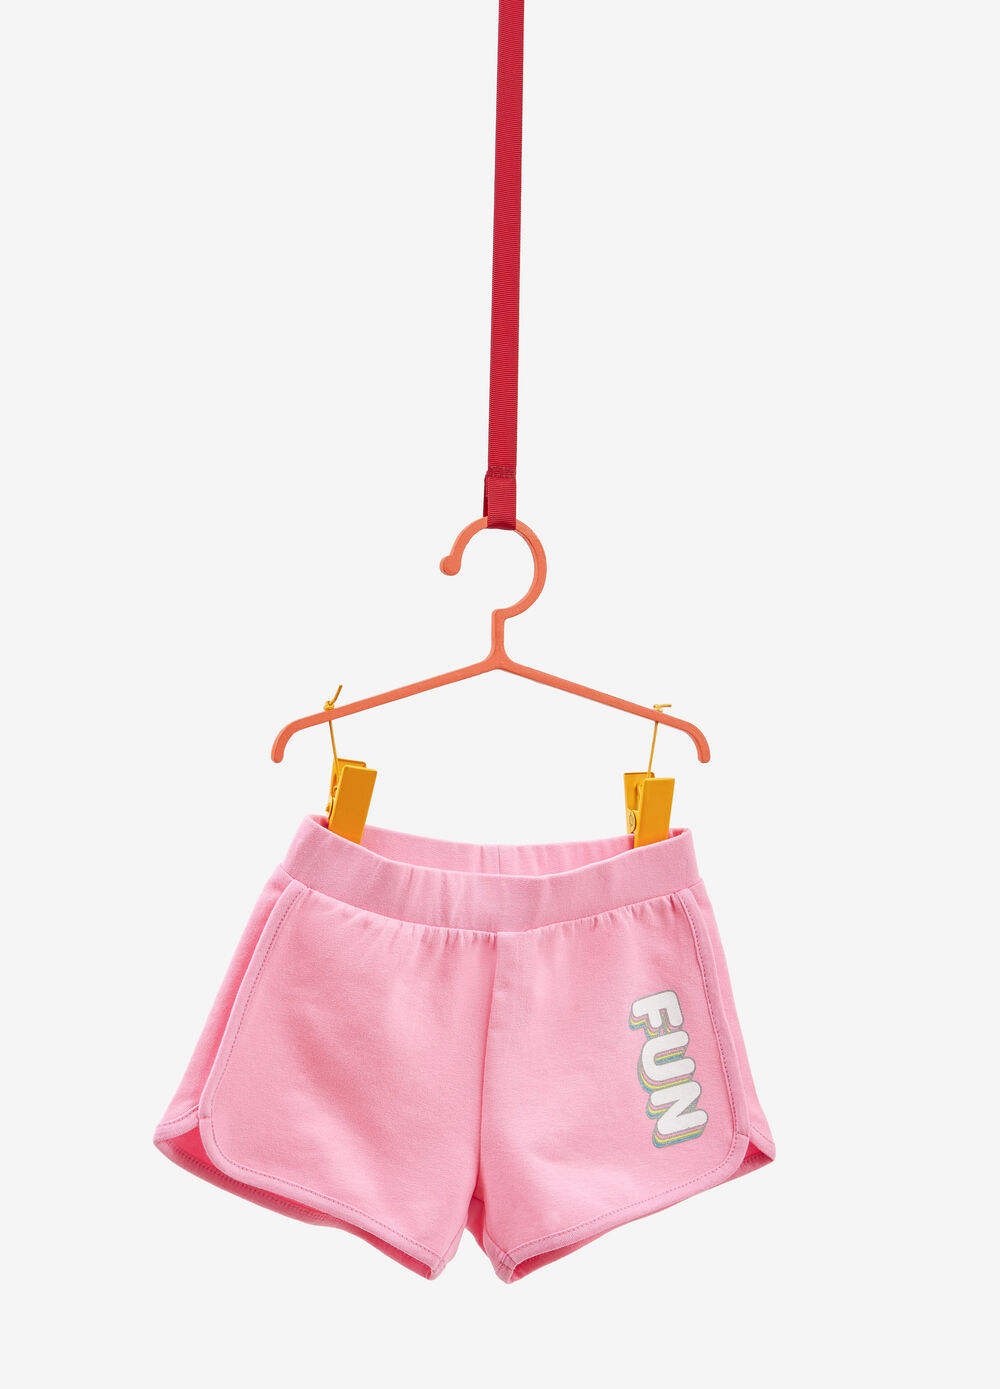 Stretch cotton shorts with printed lettering